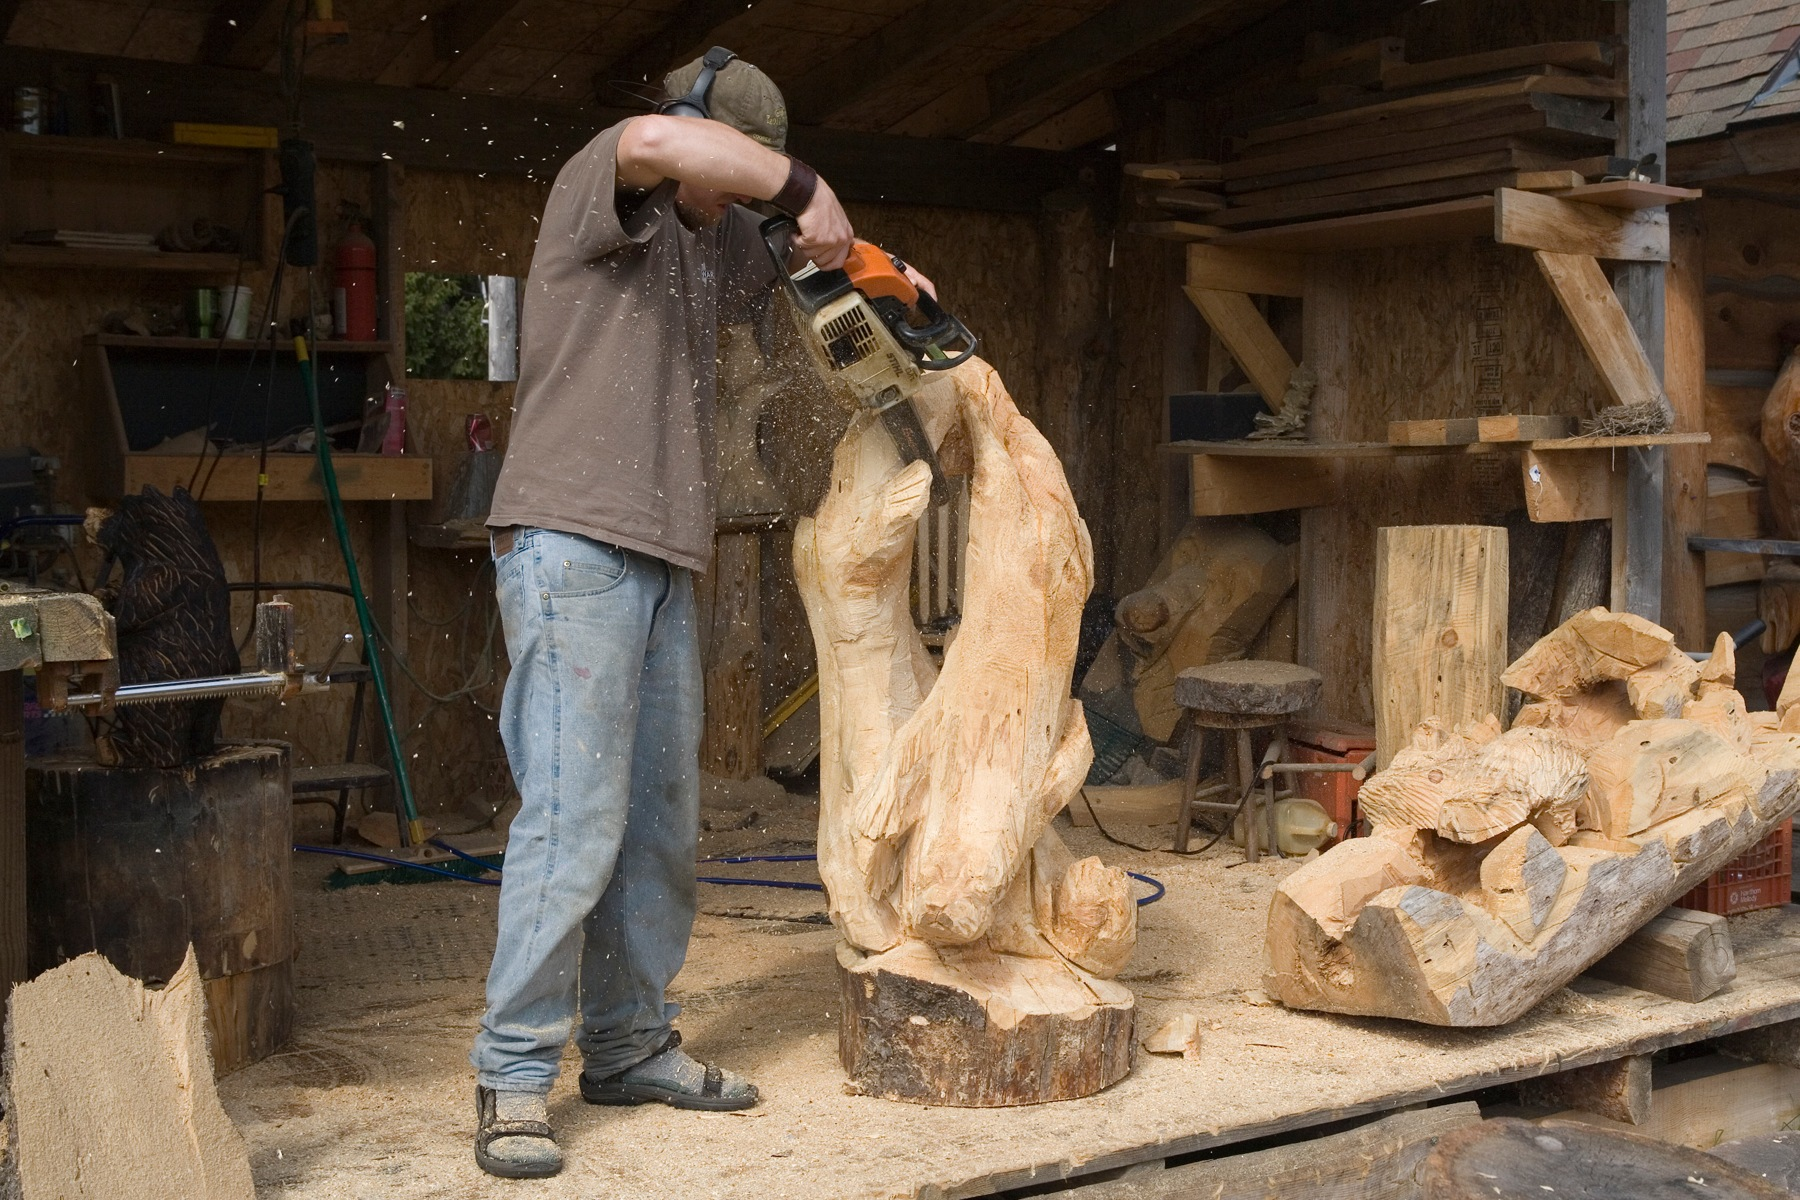 carving wood with a chain saw by Bernard Mordorski